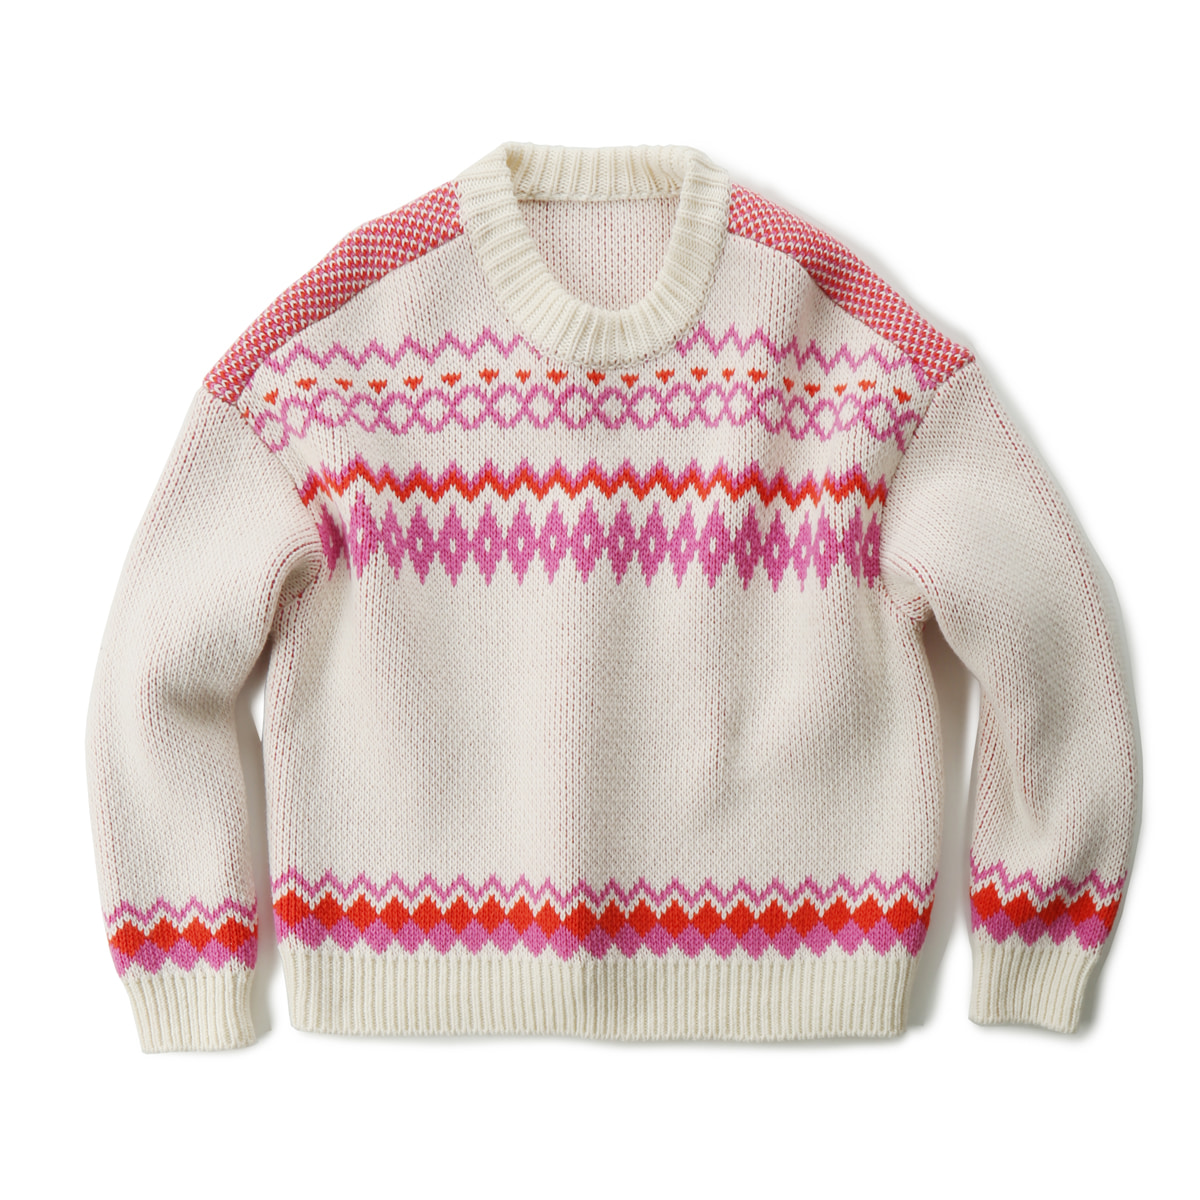 [MUSED] NILLA FAIRISLE PULLOVER KNIT 'IVORY/PINK'